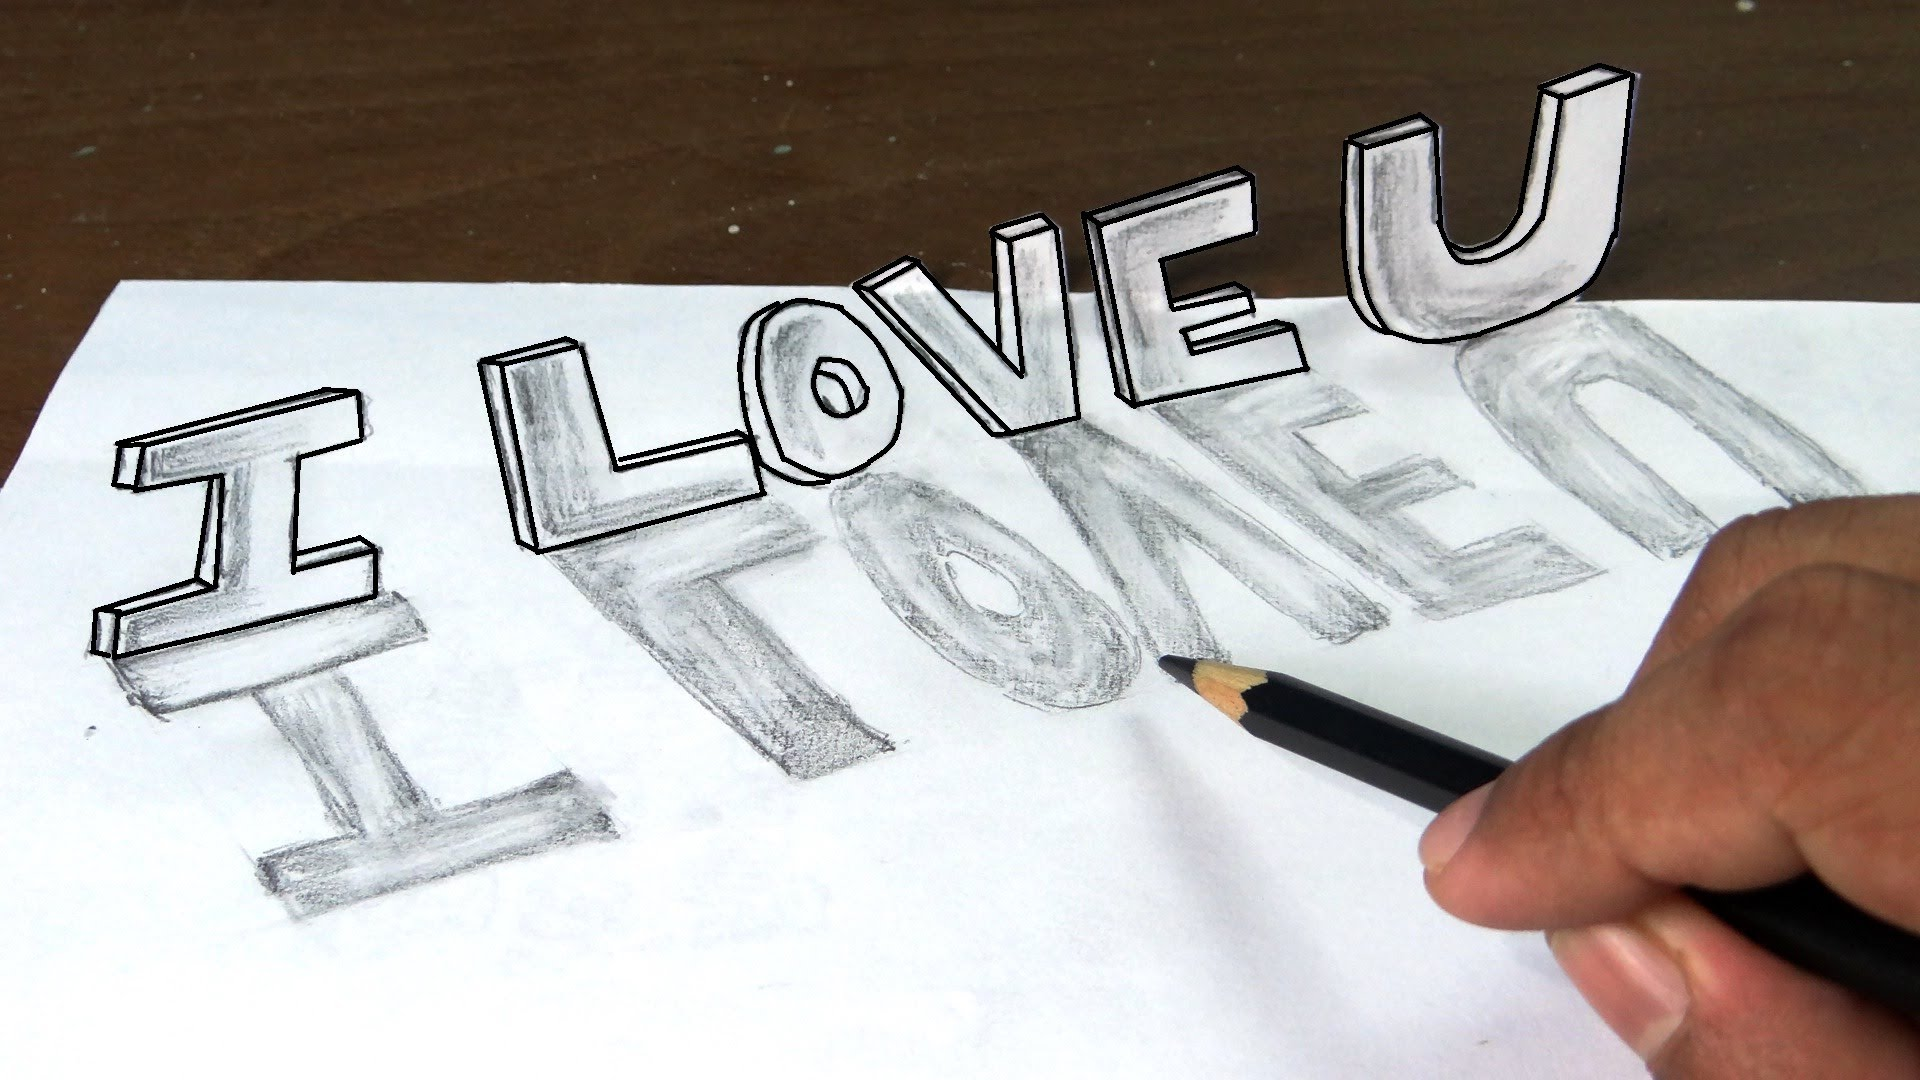 Drawn scenery graffiti 3D with love narration you